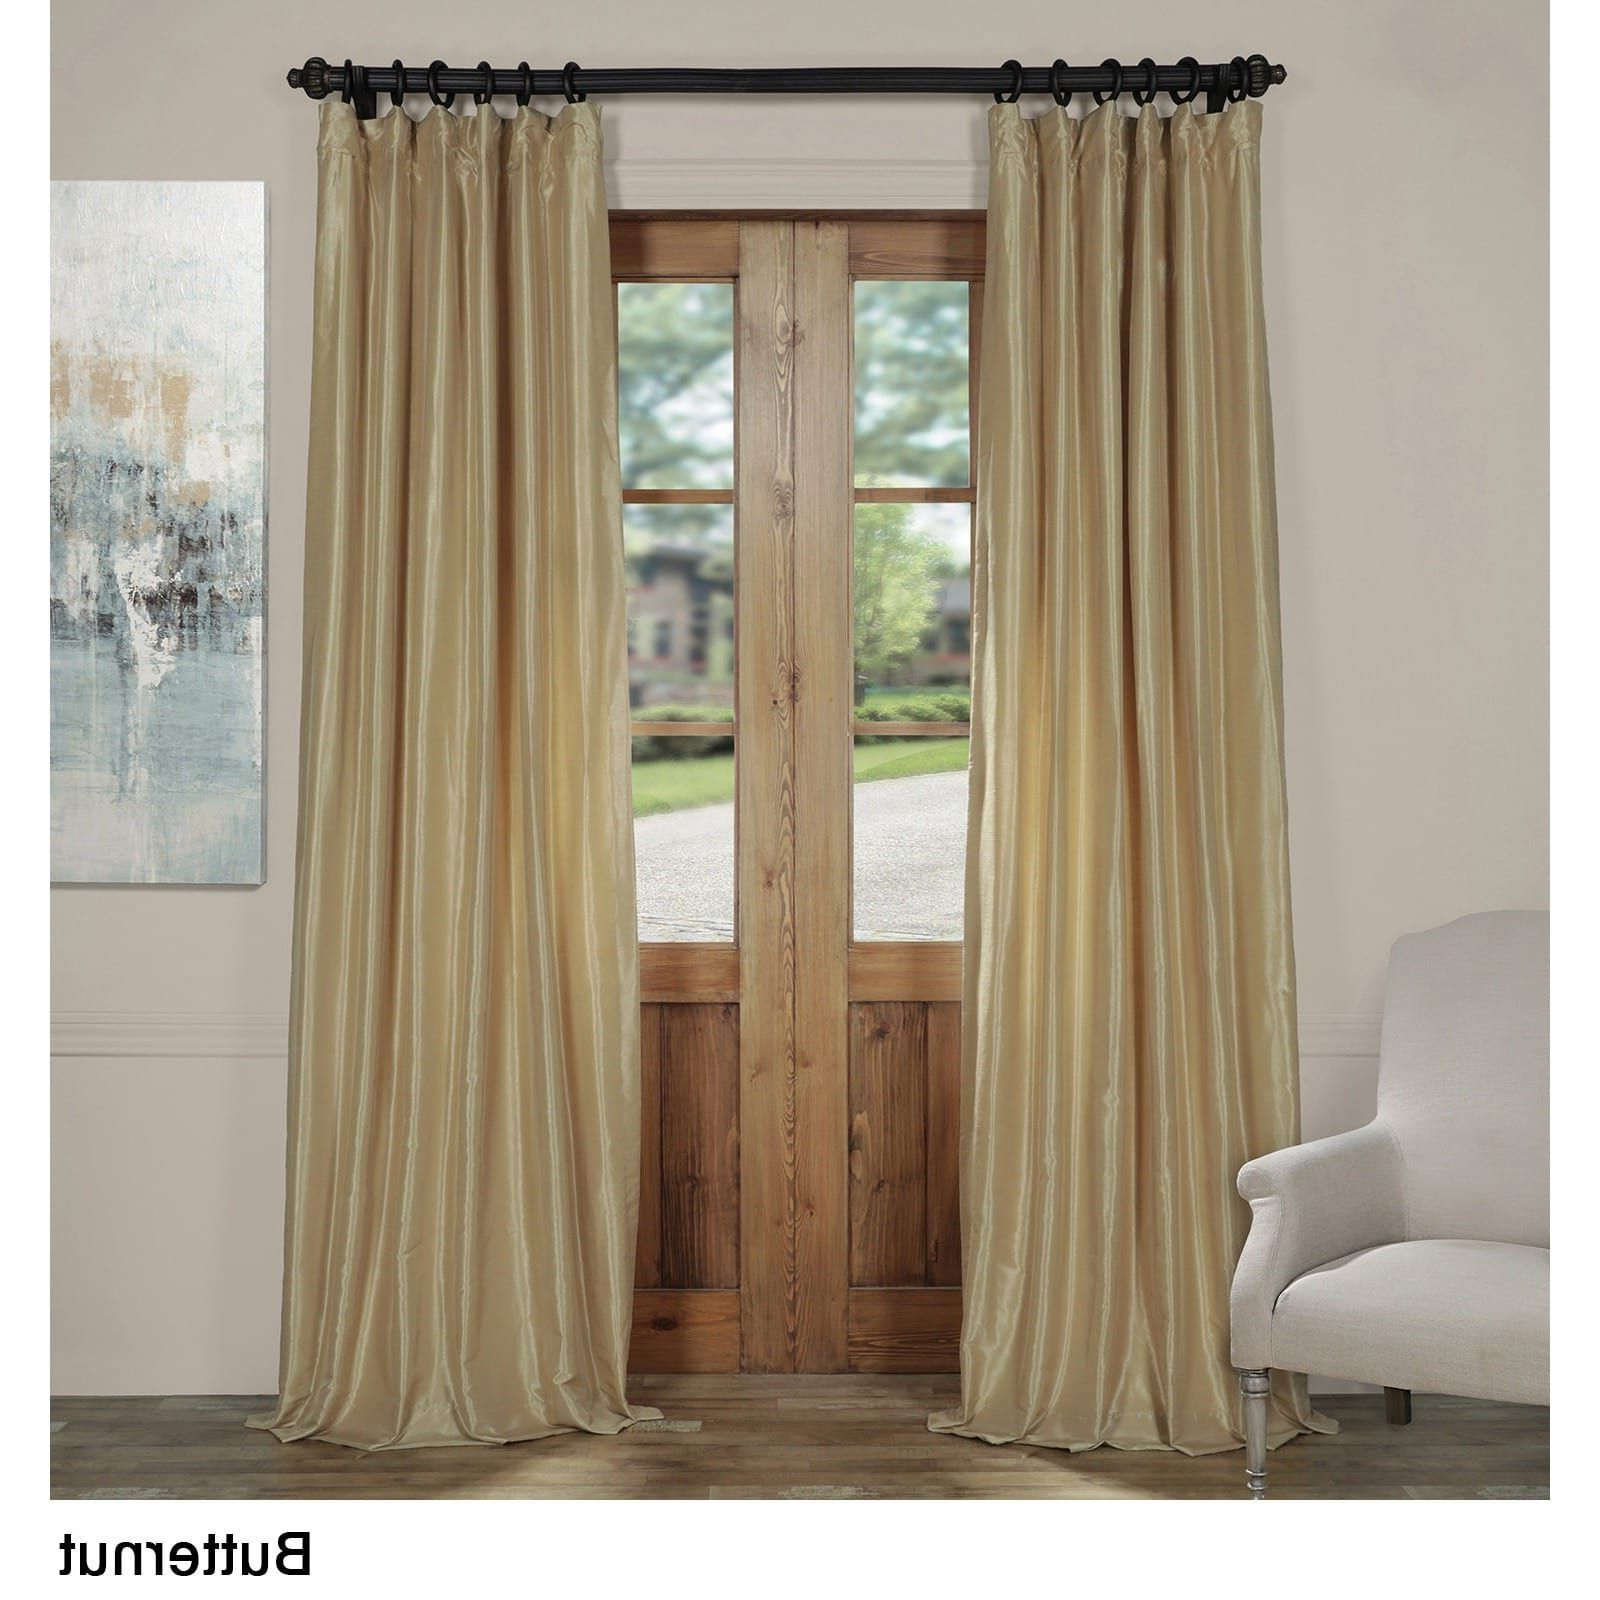 Best And Newest Storm Grey Vintage Faux Textured Dupioni Single Silk Curtain Panels With Exclusive Fabrics Vintage Textured Faux Dupioni Silk Curtain (View 20 of 20)